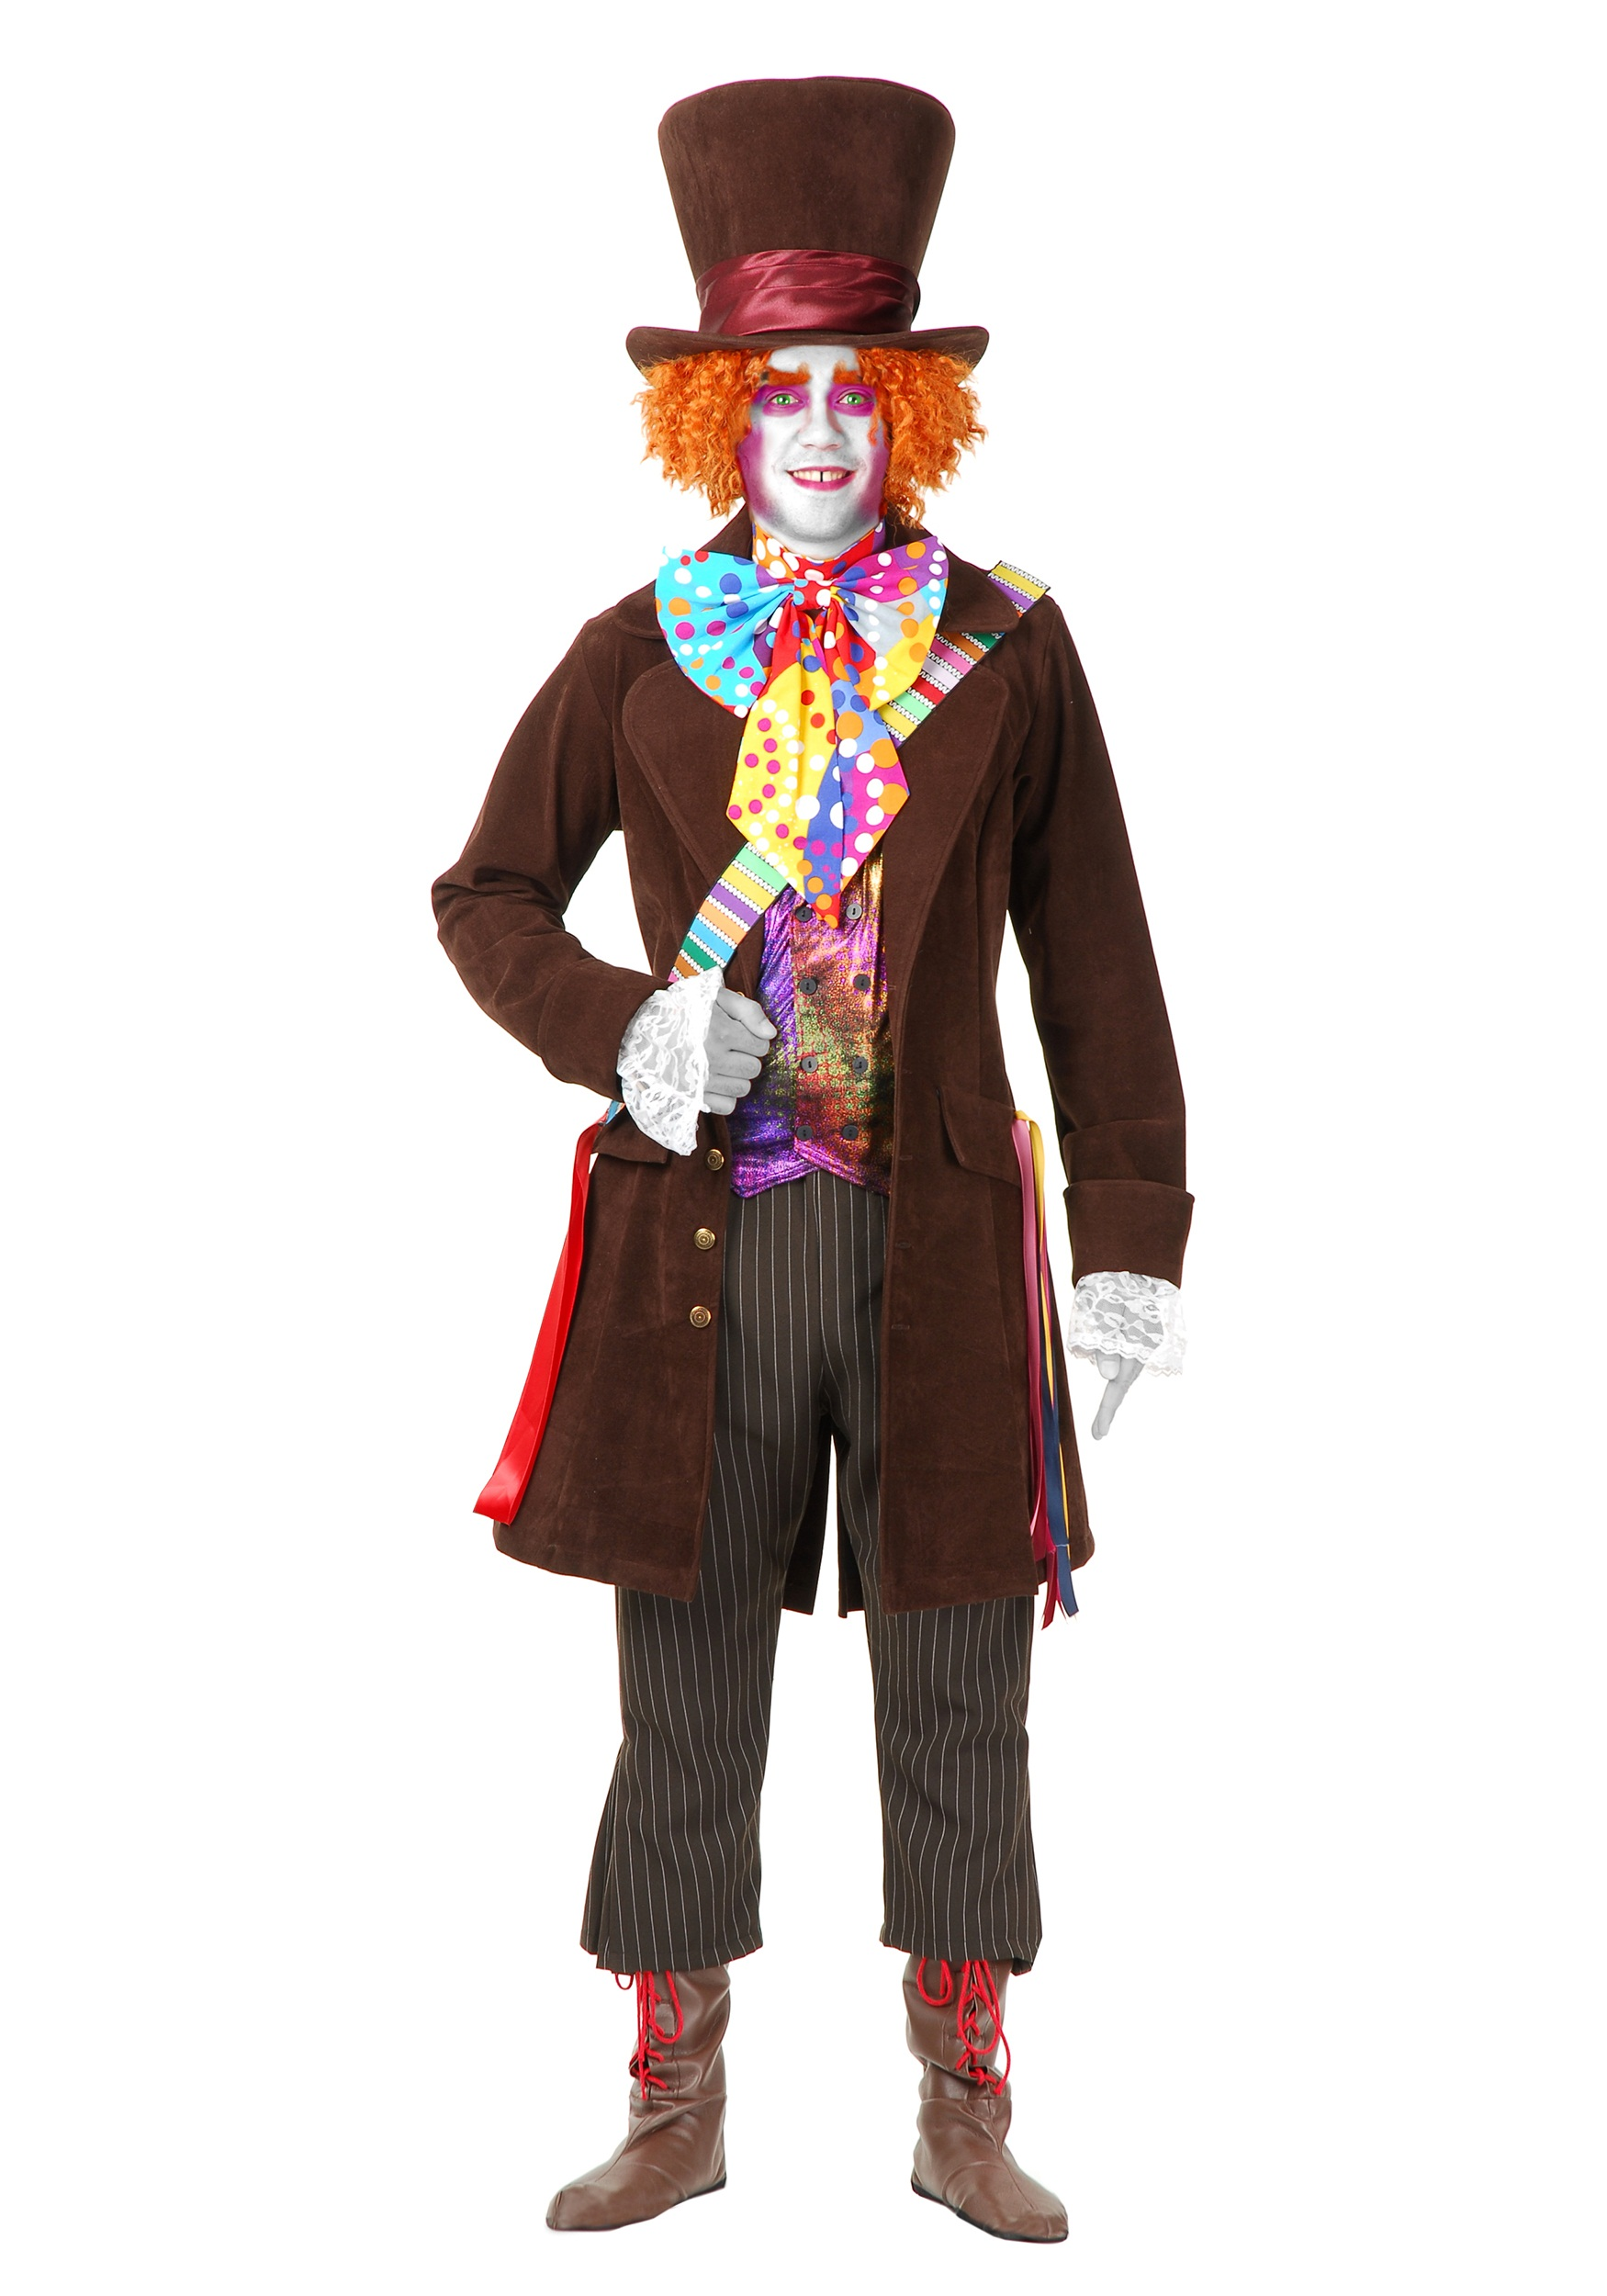 Menu0027s Deluxe Mad Hatter Costume  sc 1 st  Halloween Costumes & Menu0027s Deluxe Mad Hatter Costume - Halloween Costume Ideas 2018